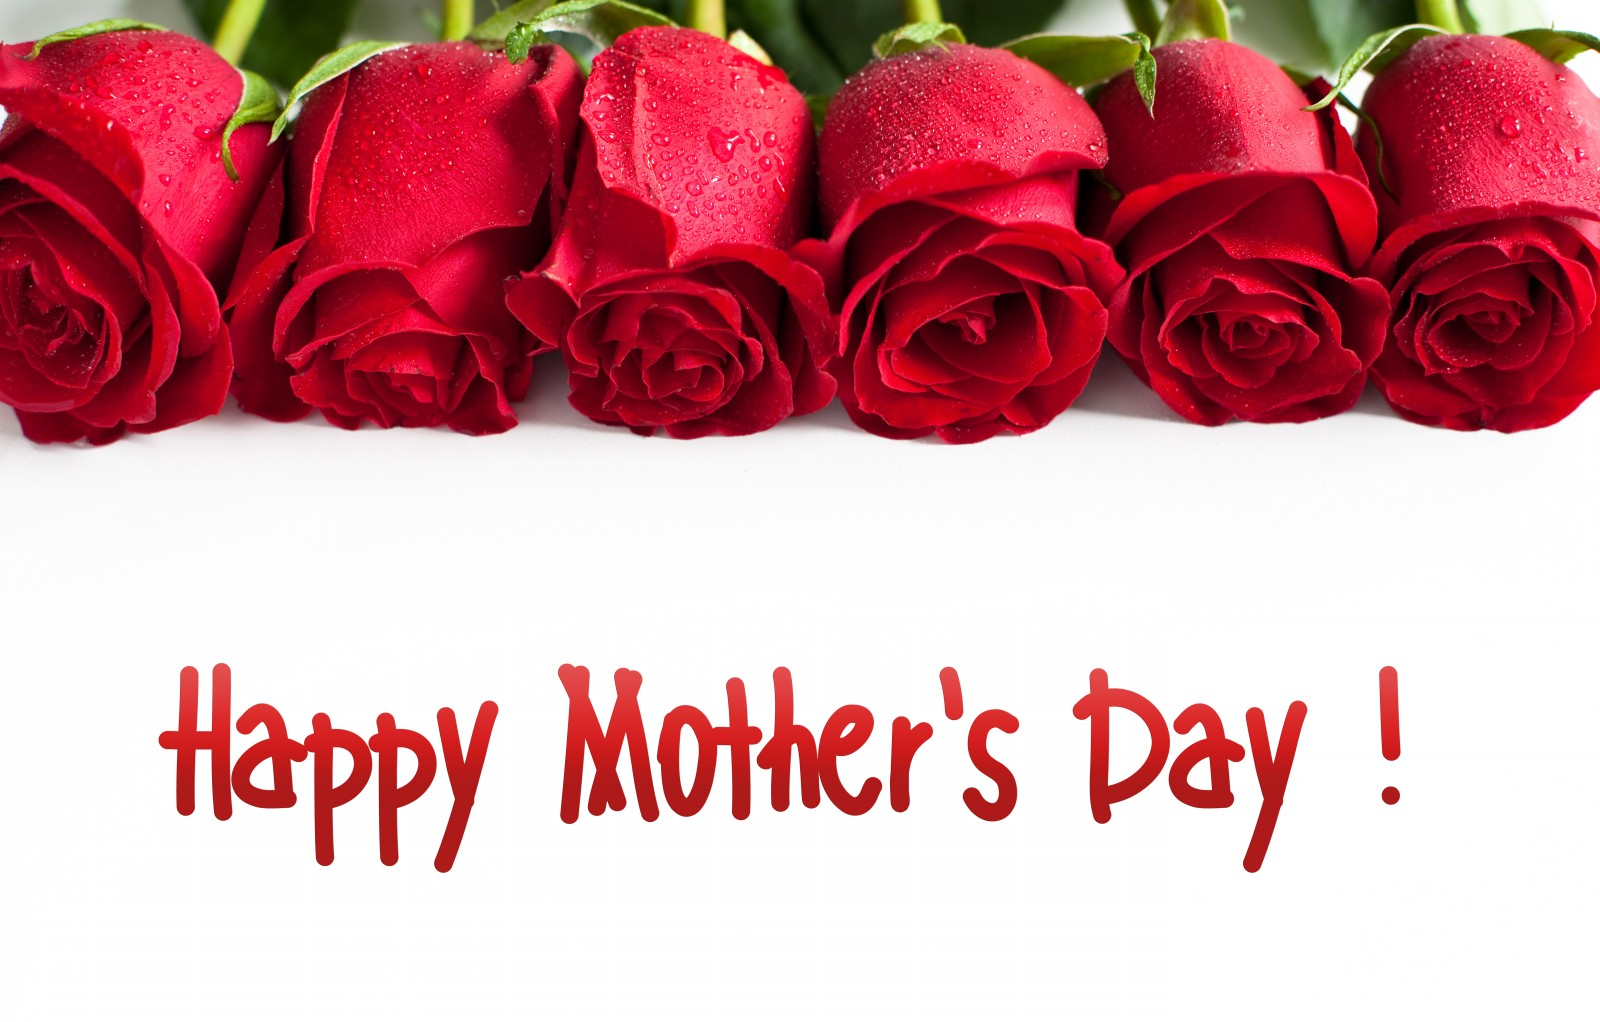 Happy Mothers Day Roses 6